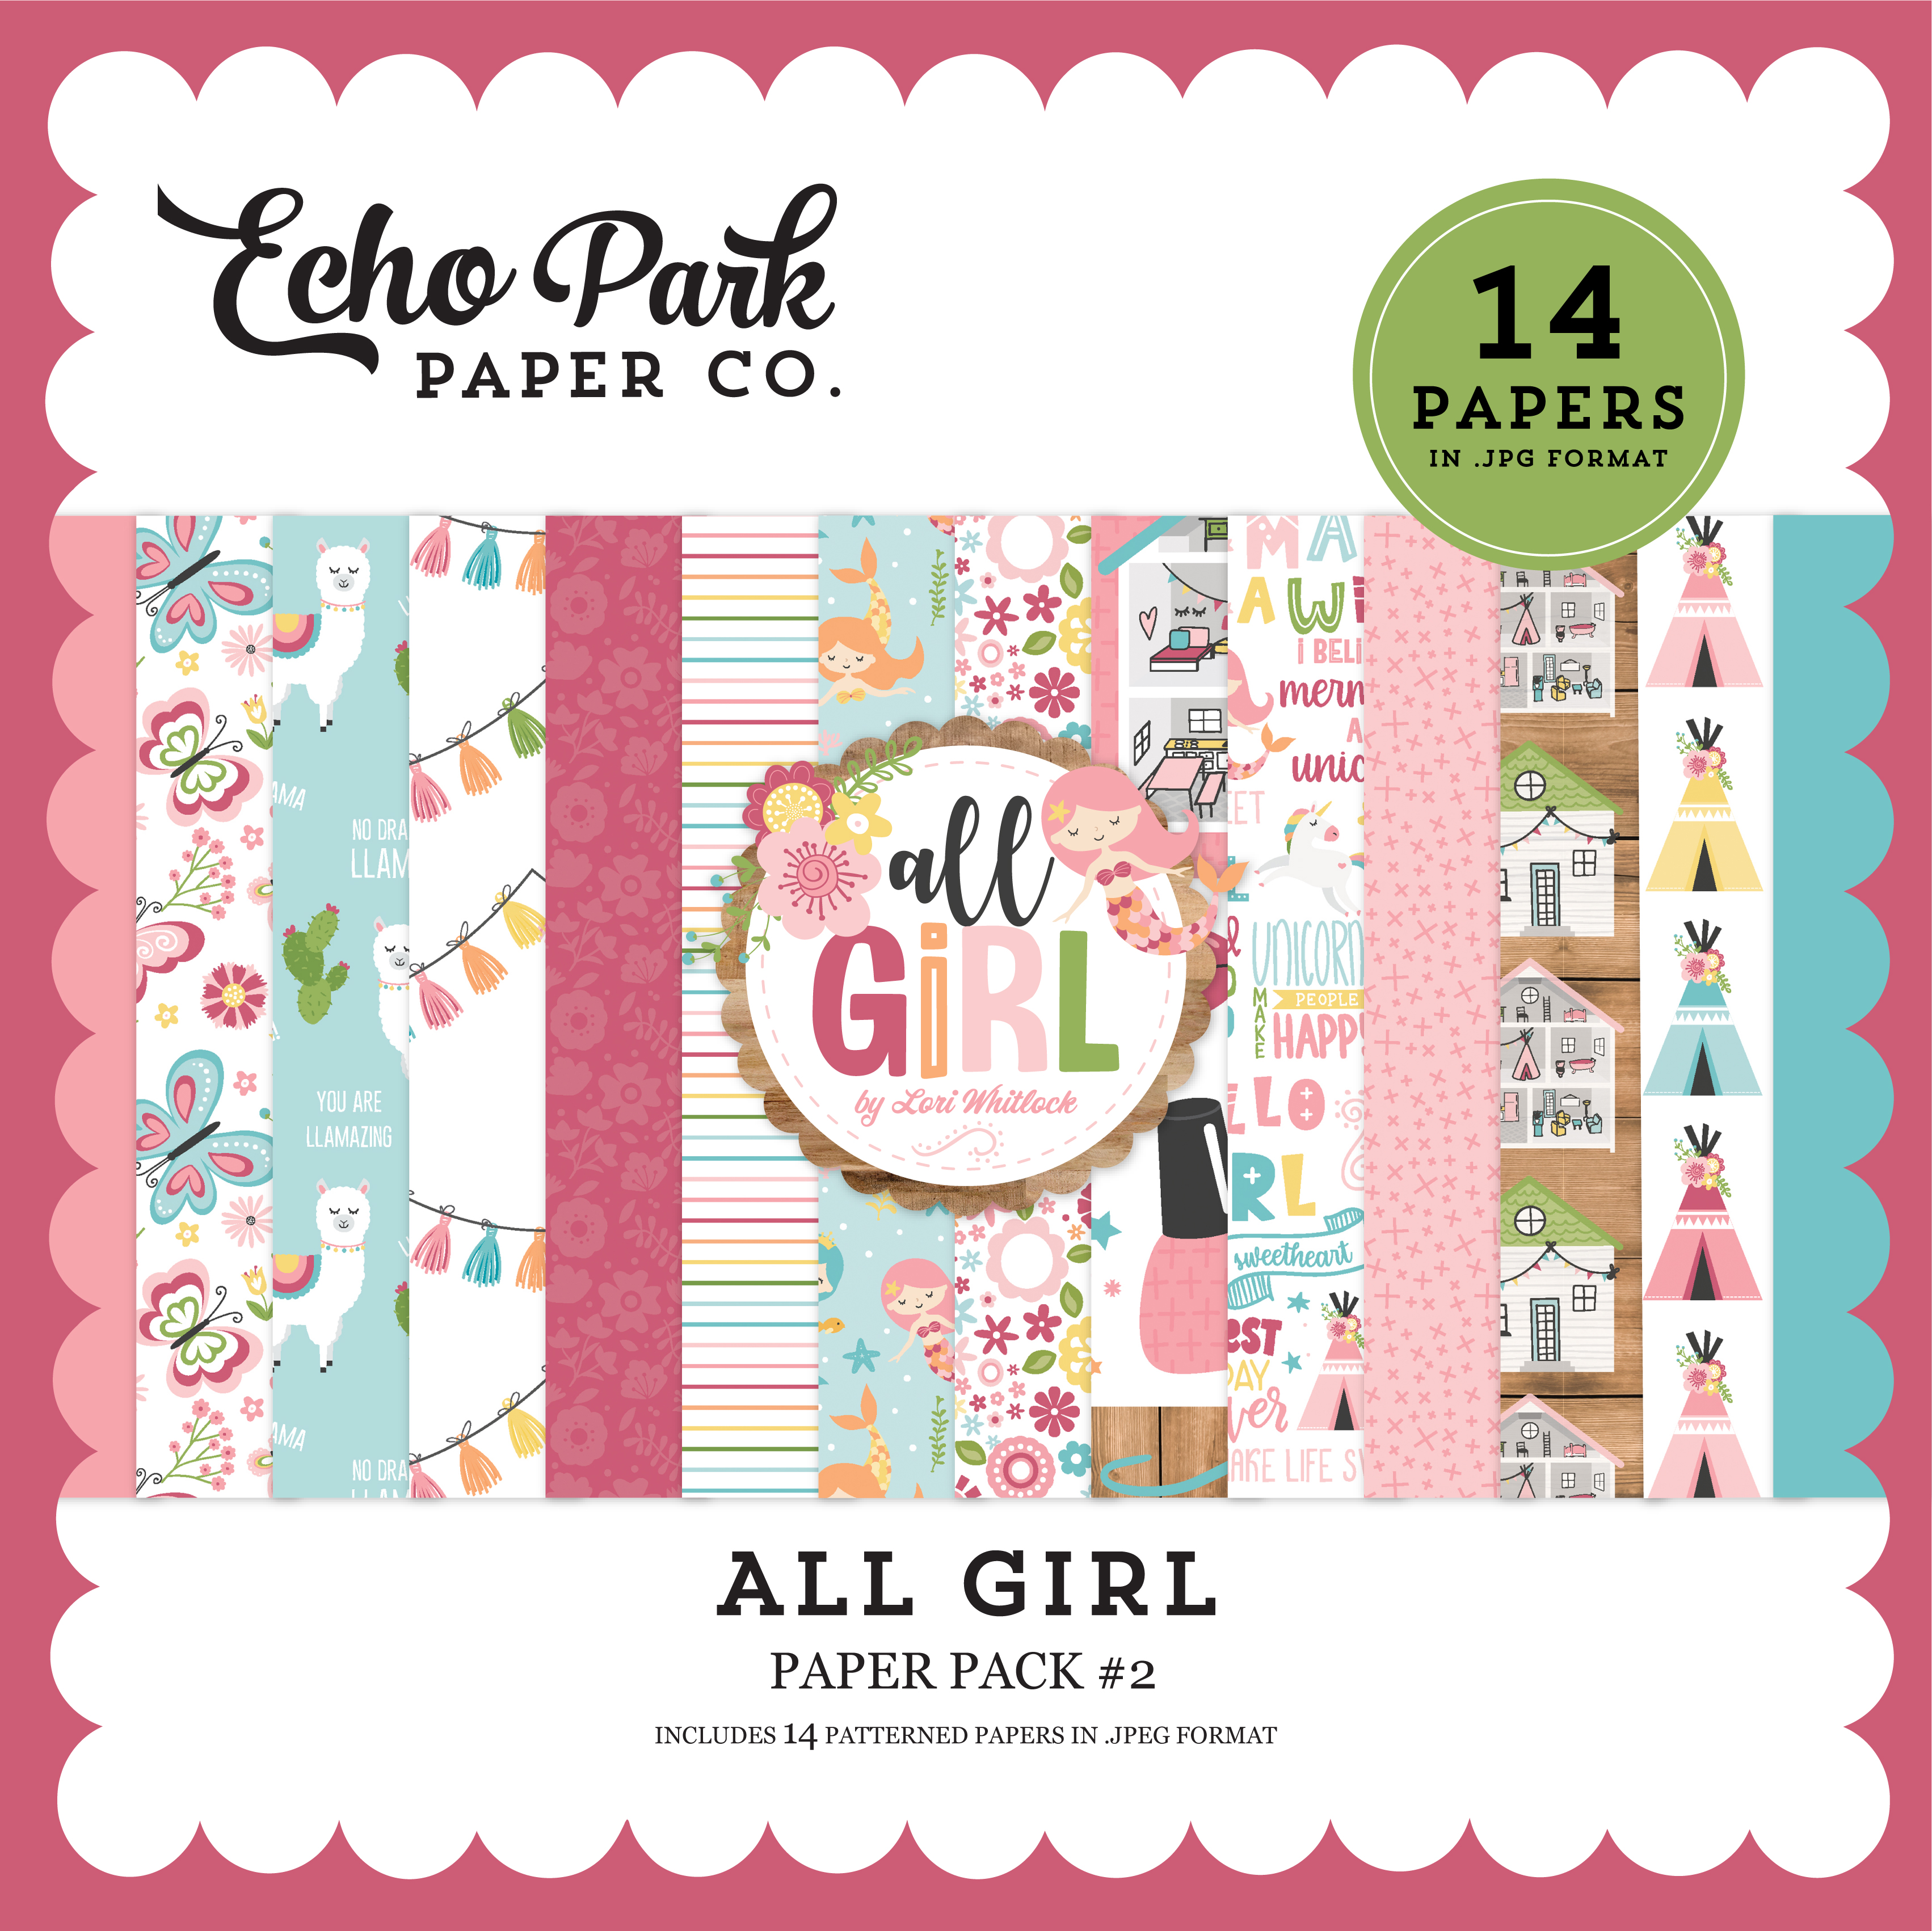 All Girl Paper Pack #2